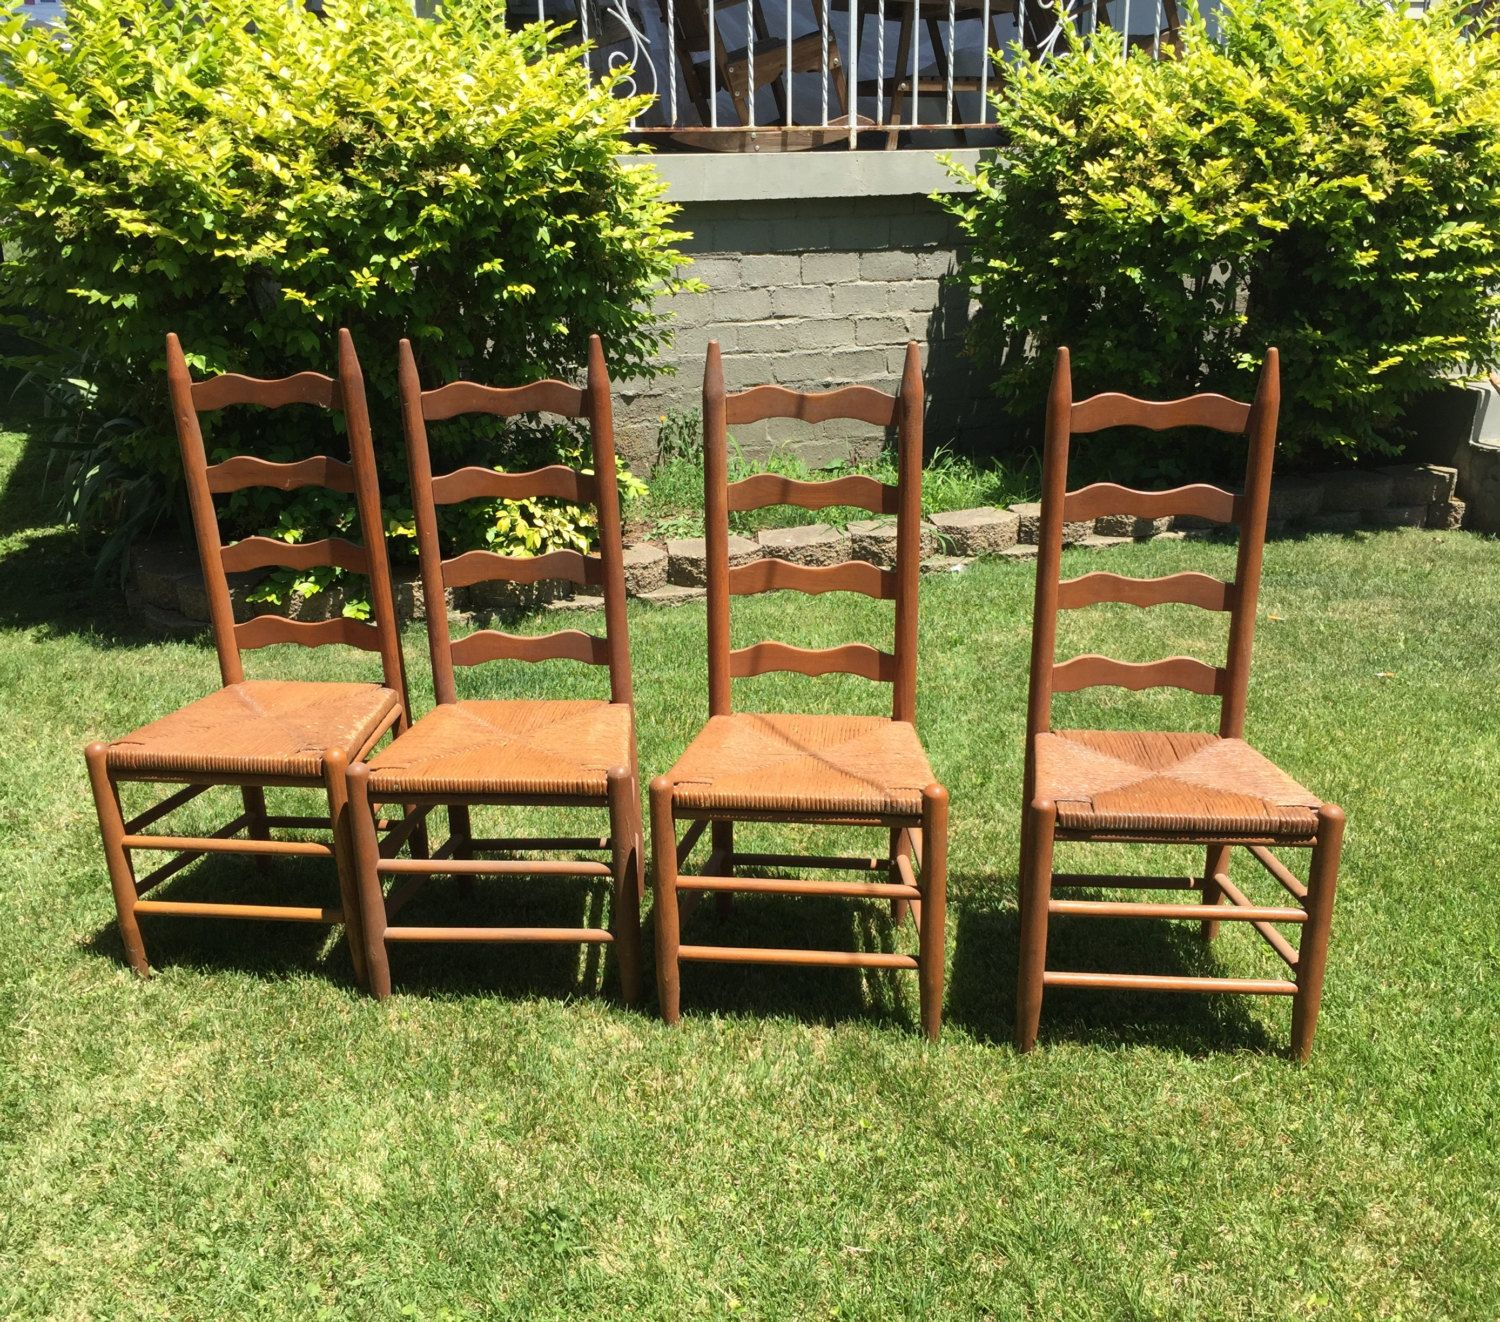 Vintage Ladder Back Chairs, Sturdy, Show Minimal Wear, Beautiful Tall Back  Chair with Rush Seats, Four Chairs sold seperately, Bargain Price by ... - Vintage Ladder Back Chairs, Sturdy, Show Minimal Wear, Beautiful